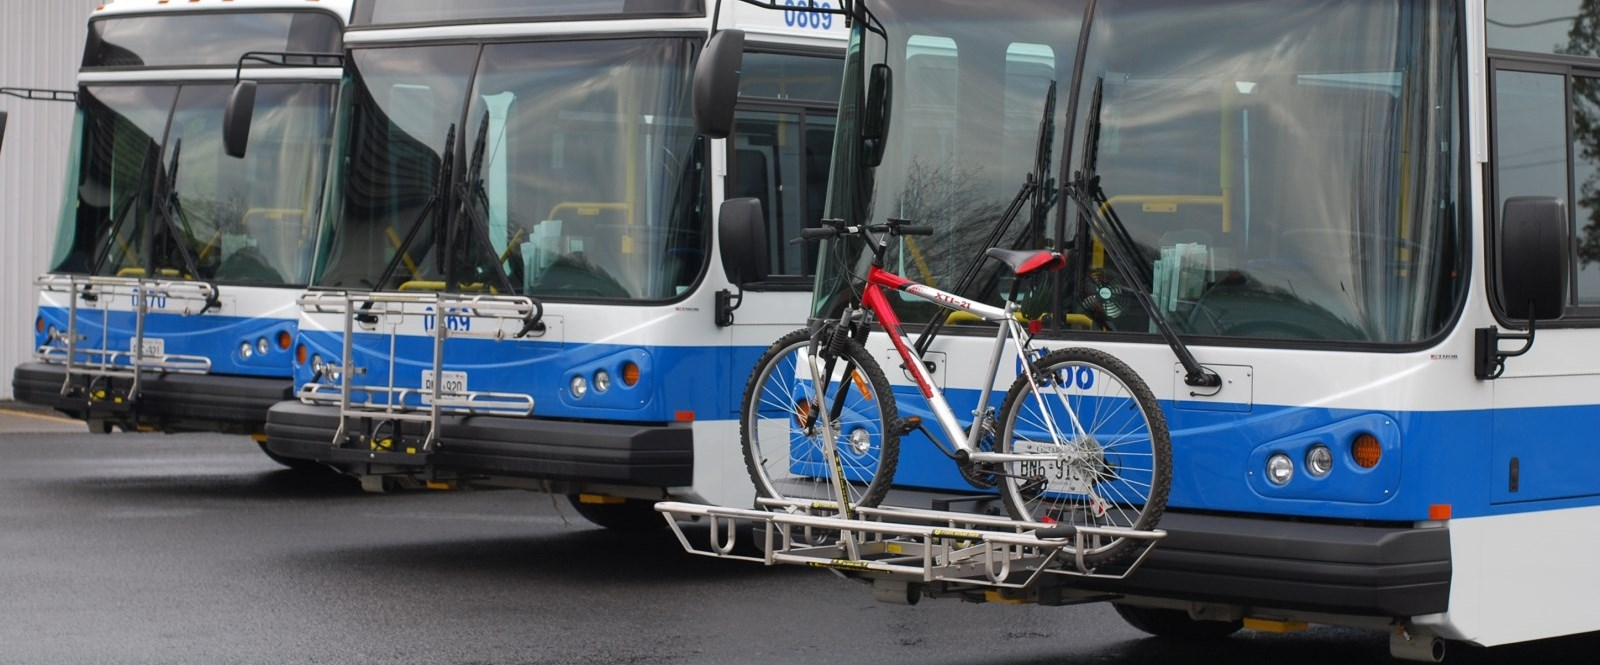 Three Cornwall buses lined up with bike racks